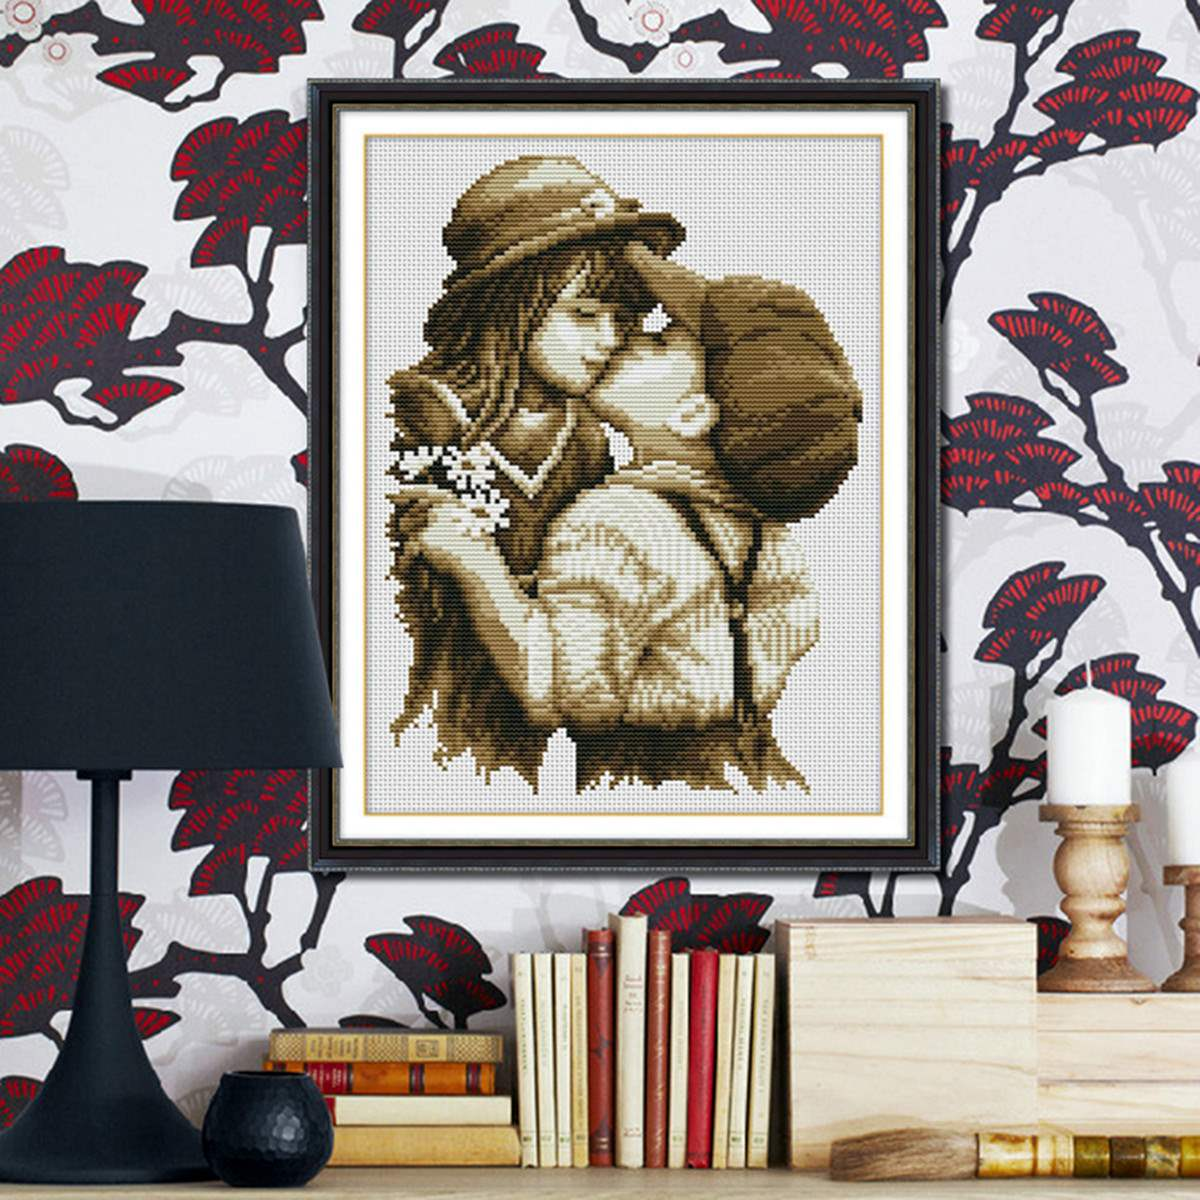 Fashion DIY Embroidery Kit Precise Printed Pure Kiss Design Handmade Needlework Cross Stitch Set Cross-Stitching Home Decoration(China (Mainland))